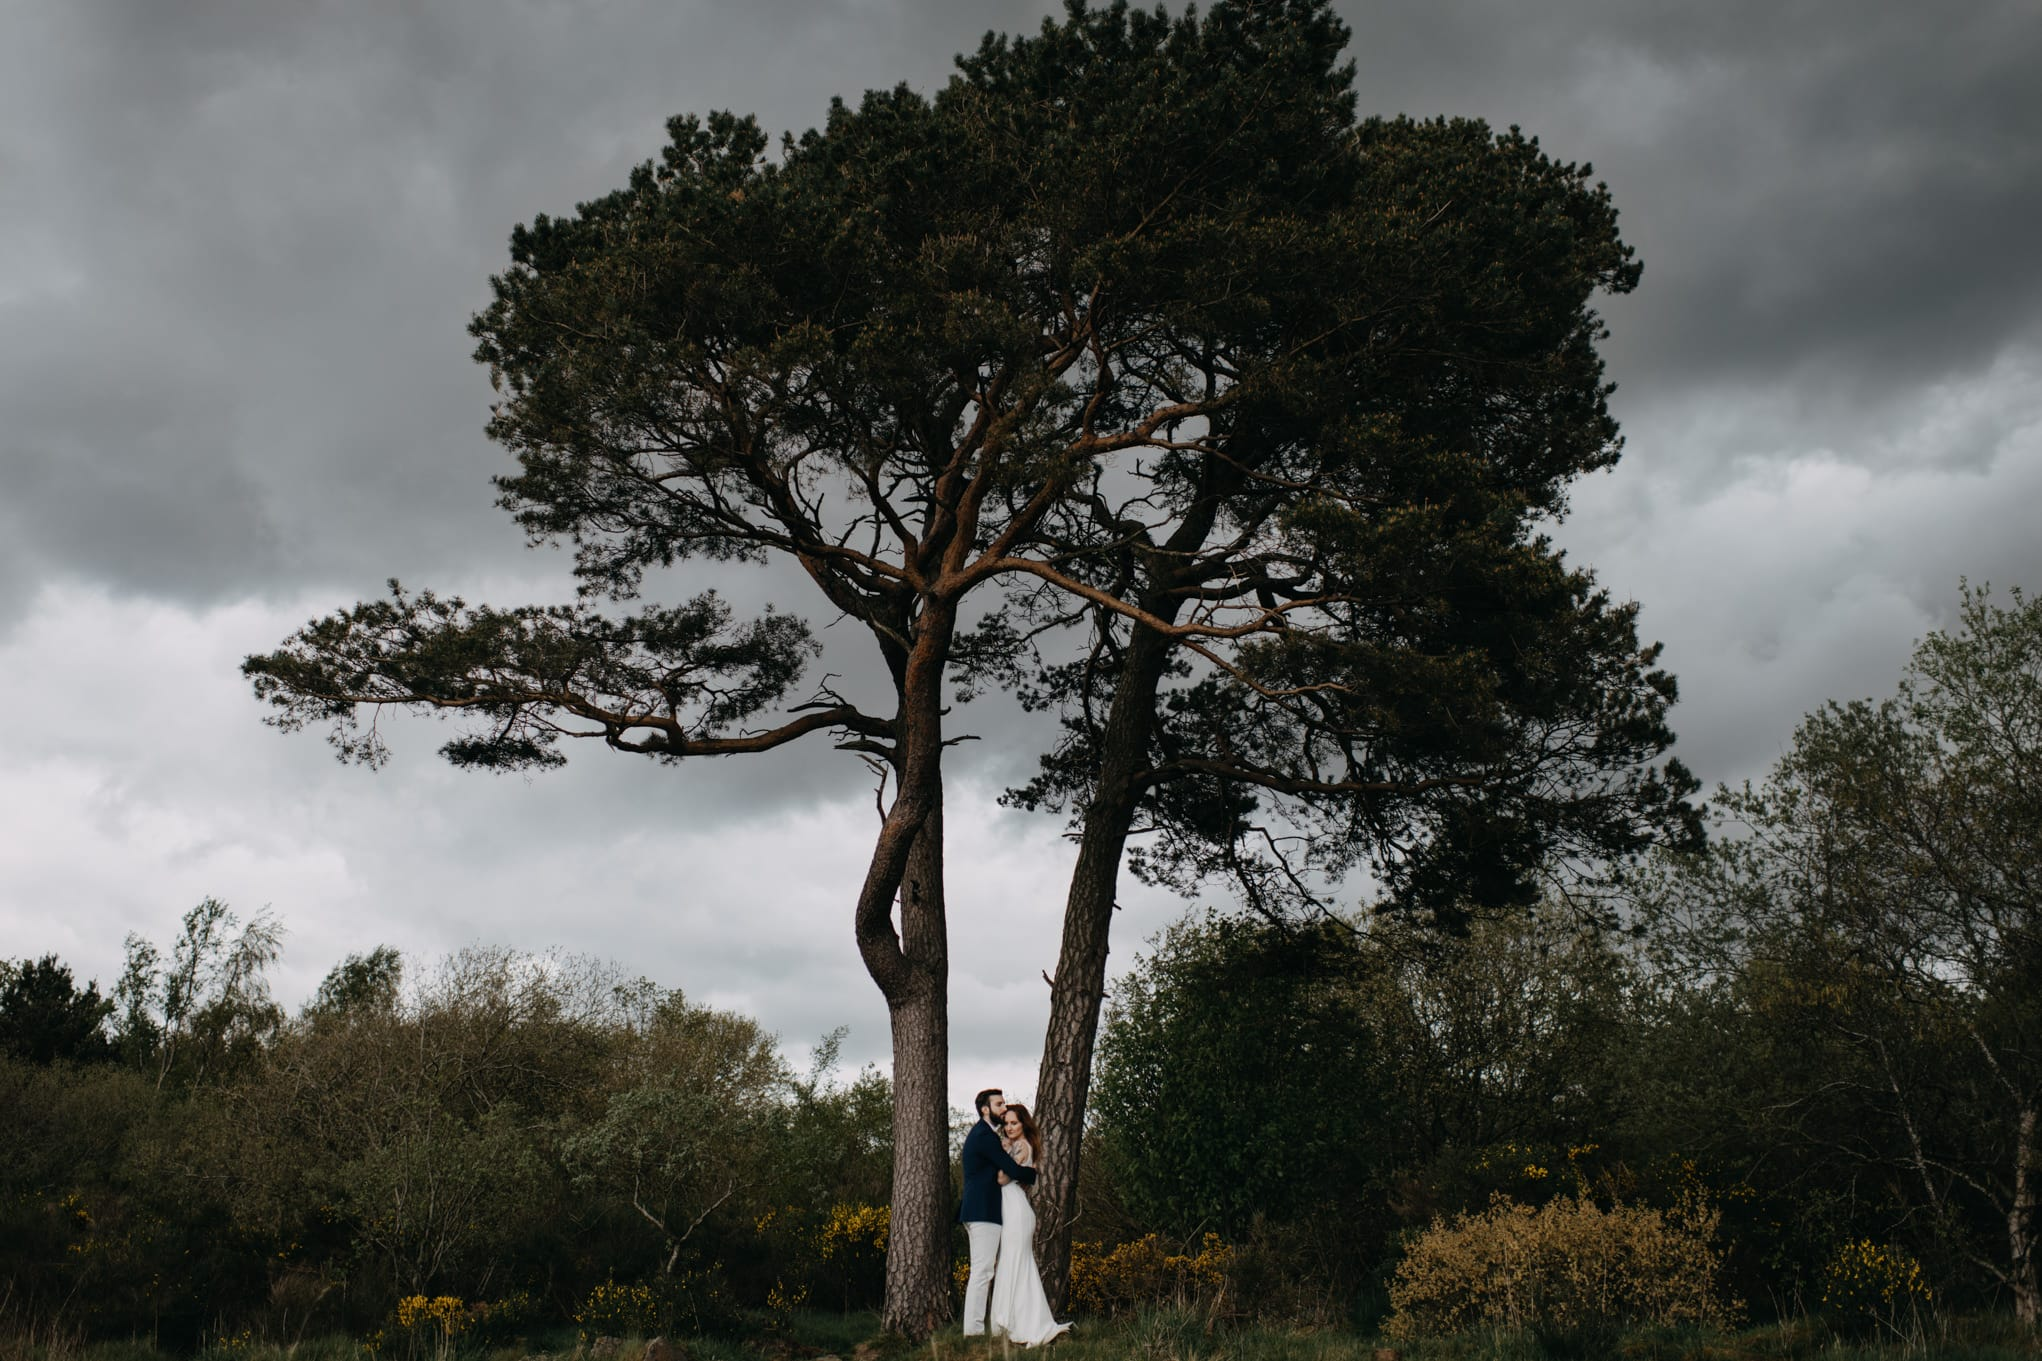 Elopement in nature Scotland. Stormy tree shot with Lena Sabala and Patrick Zaarour on Mark Pacura workshop.